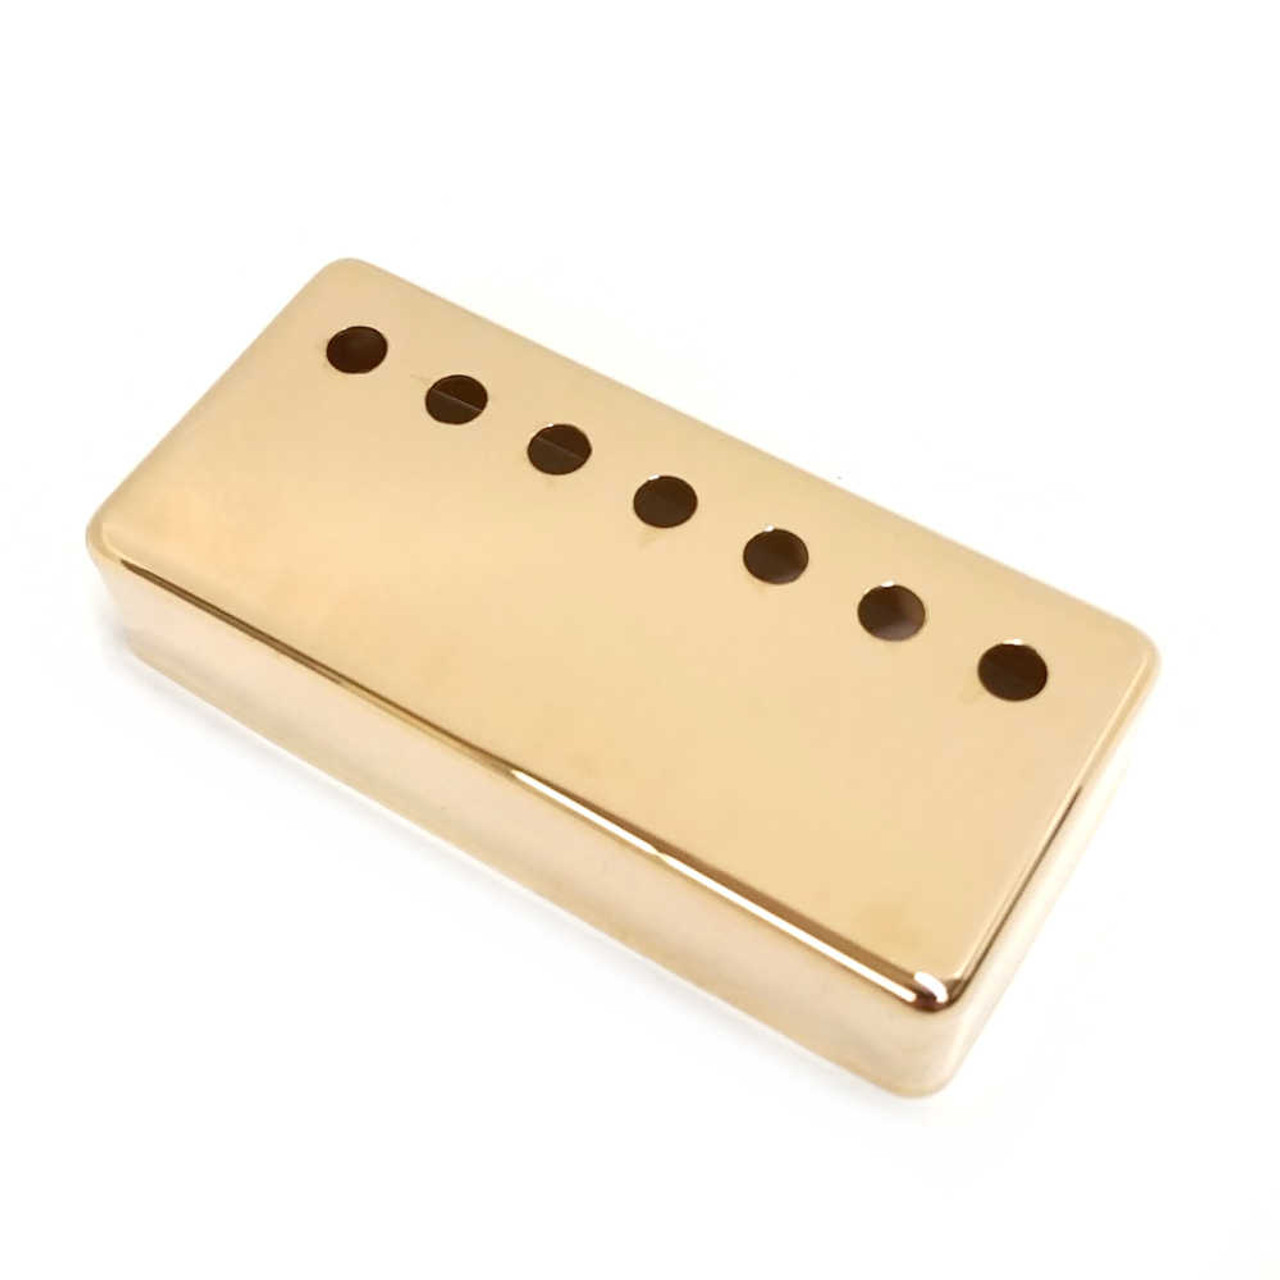 Humbucking Pickup Cover - 7-string Gold (brass; 61.2mm) CLEARANCE